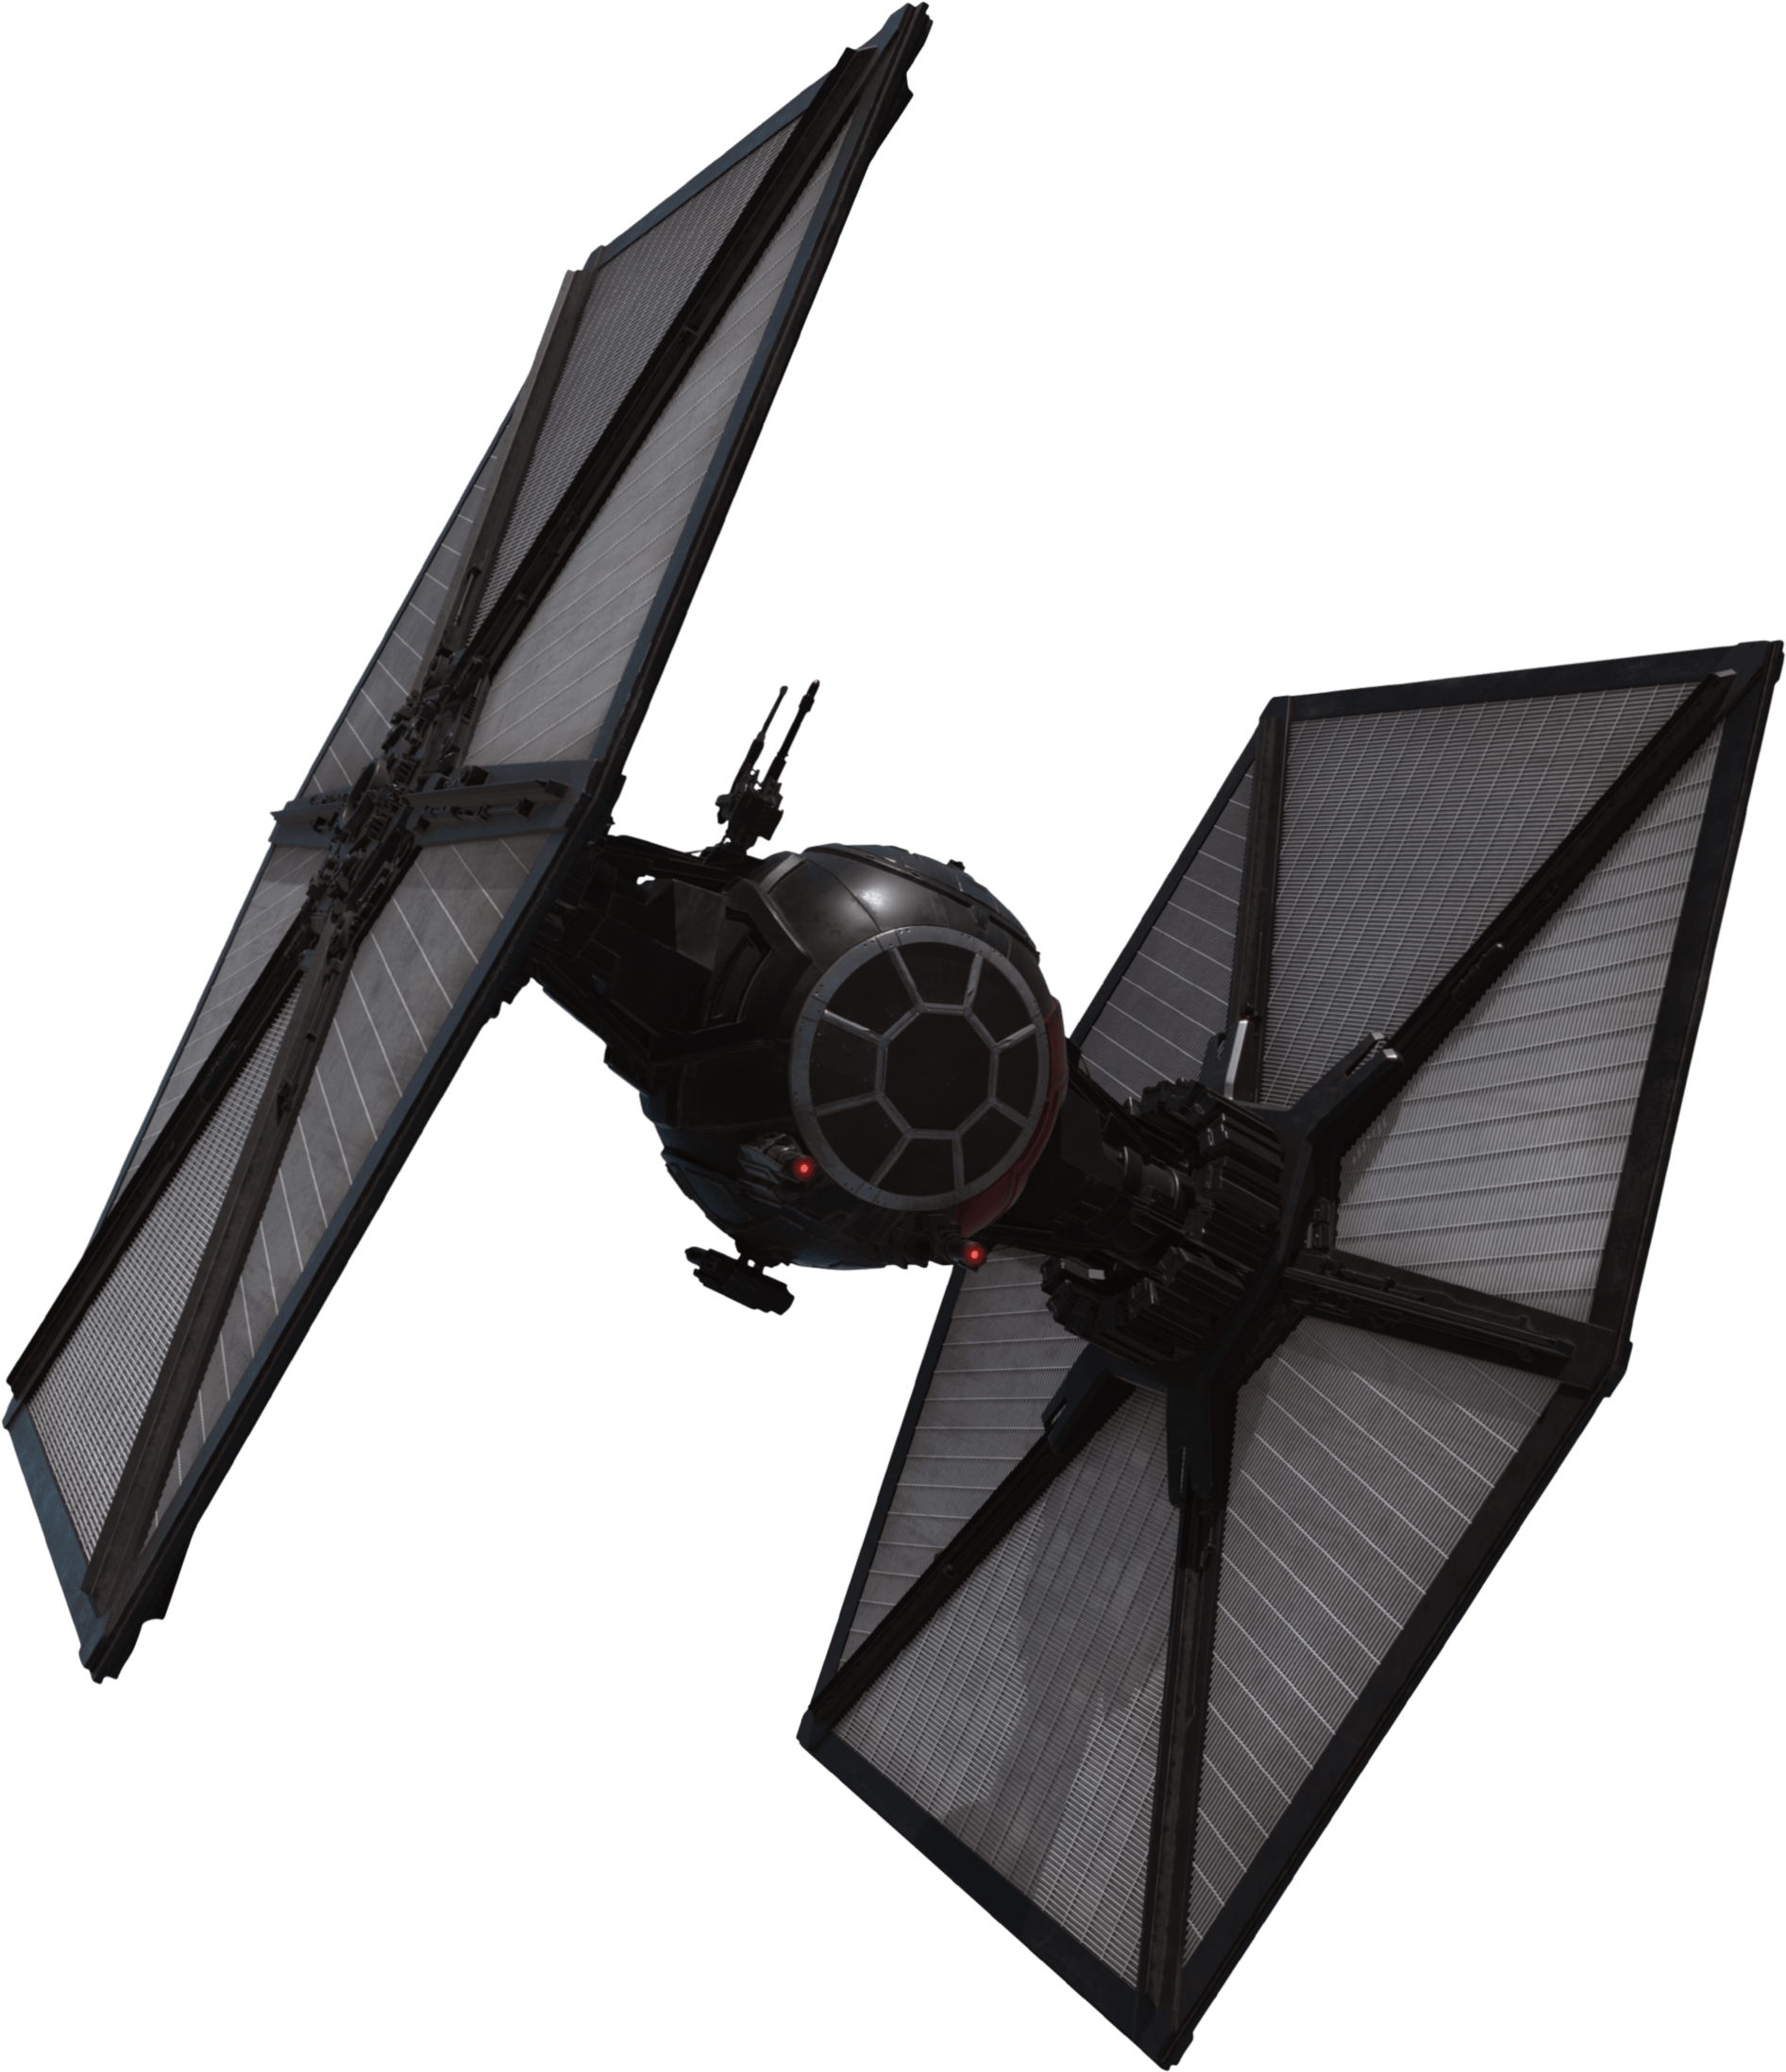 Star wars tie fighter clipart picture transparent stock Tie Fighter Transparent Star Wars Png picture transparent stock